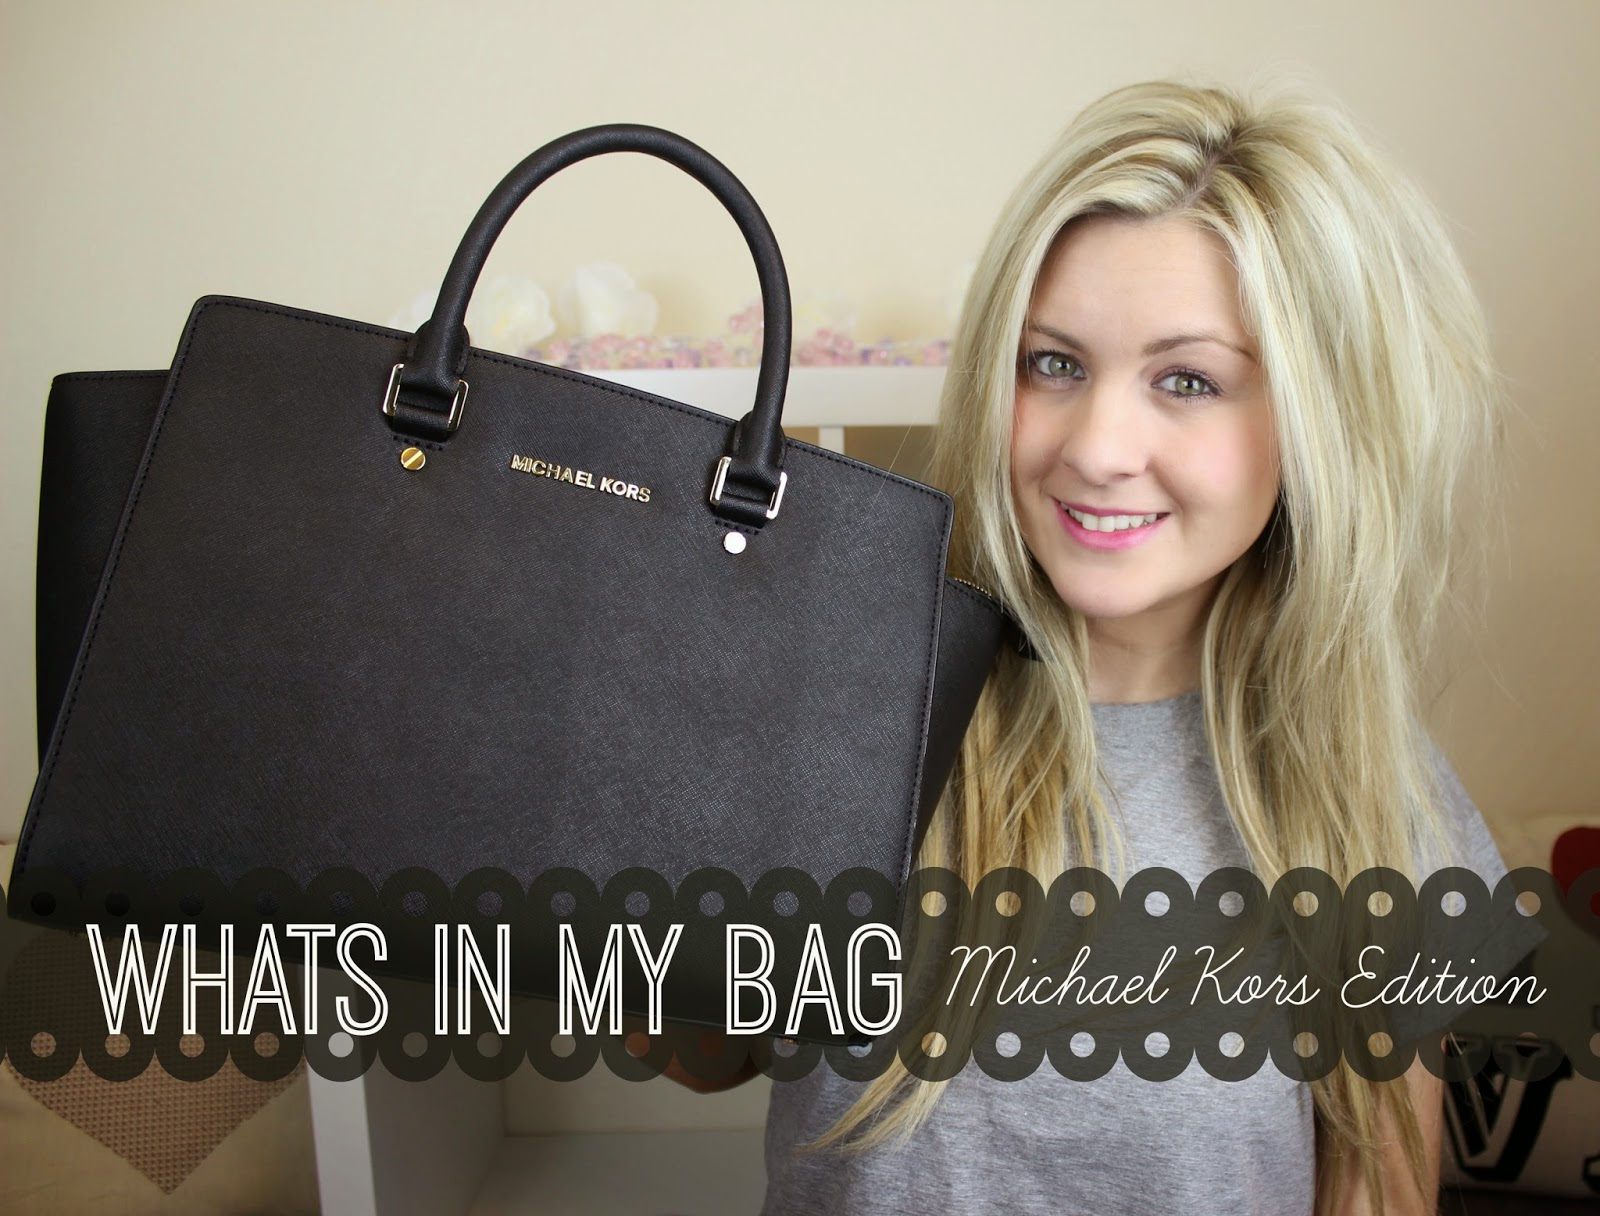 british youtubers, youtube, whats in my bag, Michael Kors Selma Bag, Michael Kors, whats in my bag tag, through chelsea's eyes,